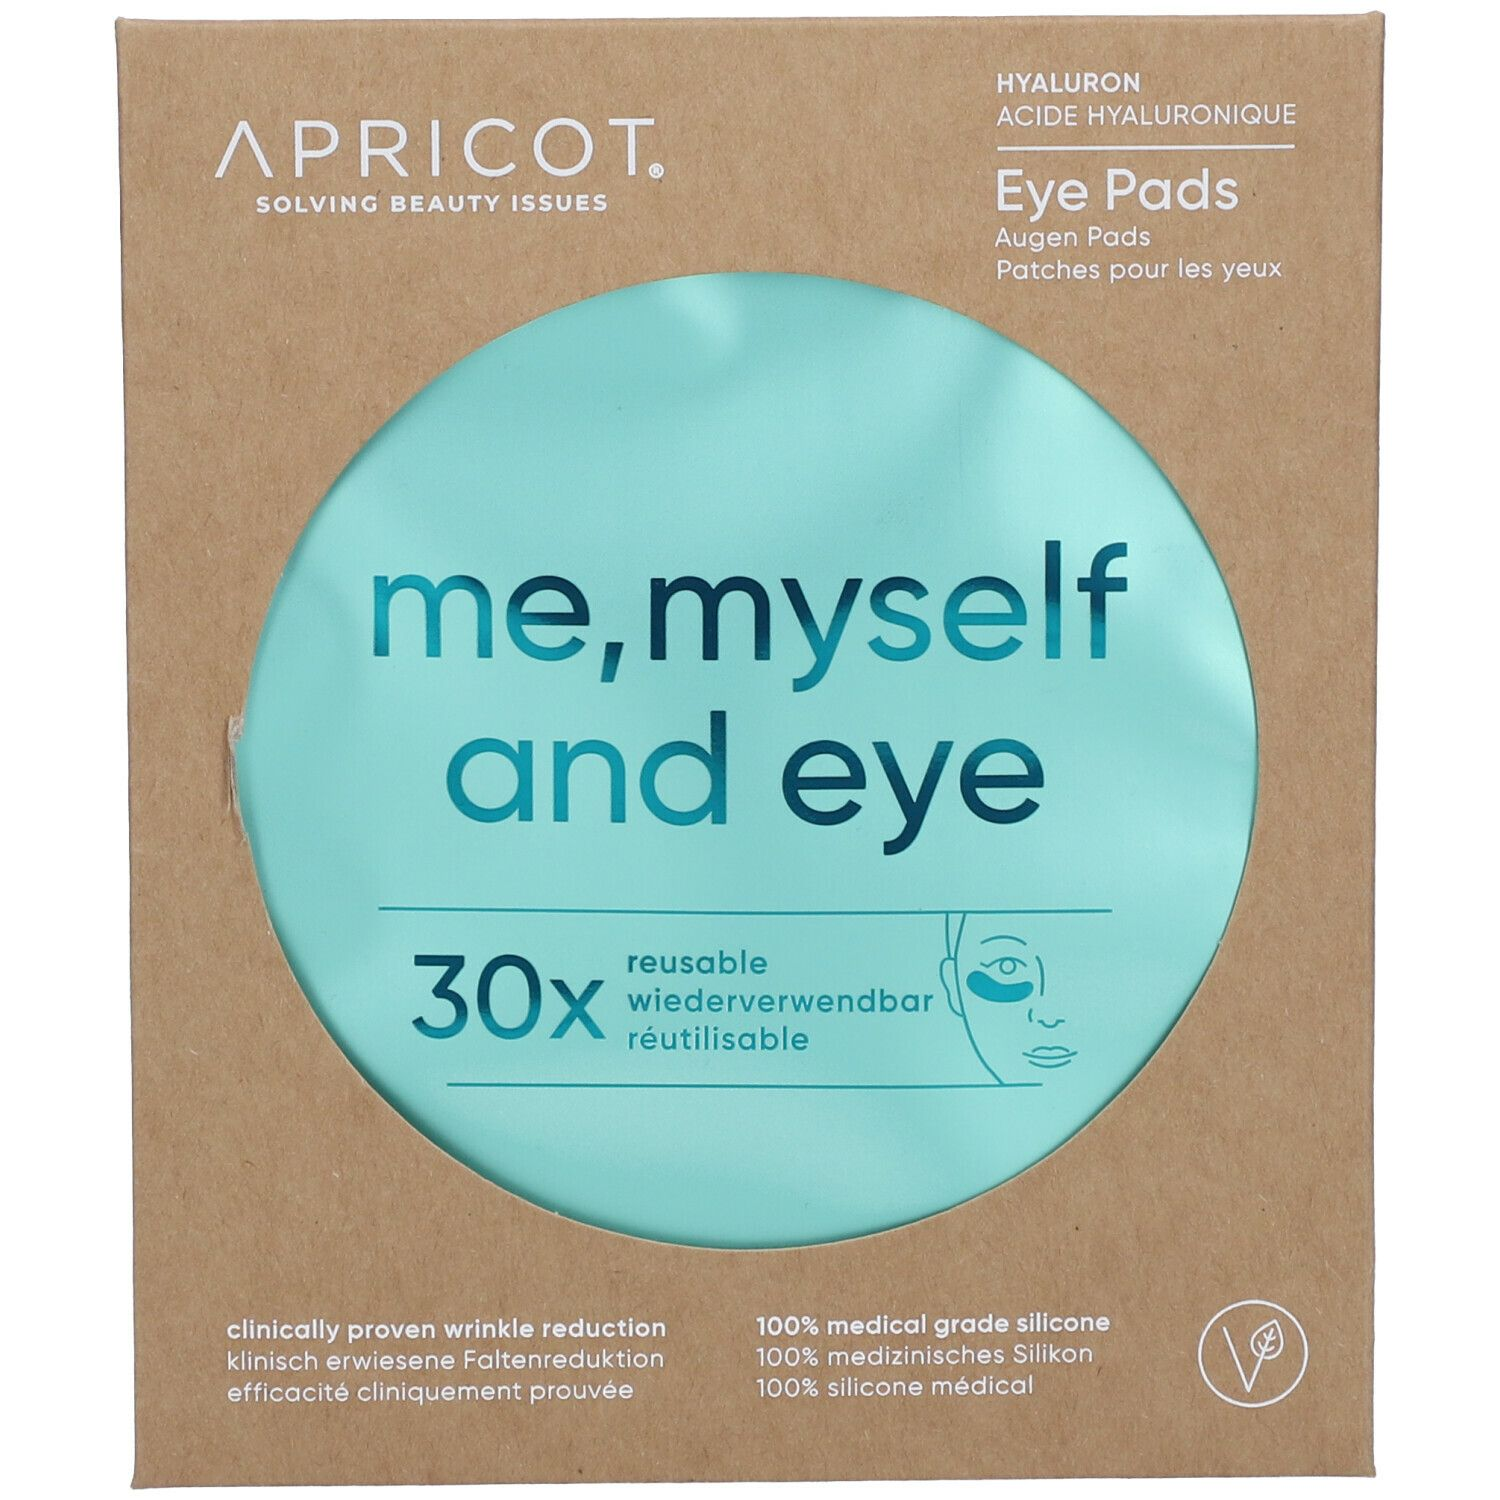 Image of APRICOT me, myself and eye Augen Pads mit Hyaluron